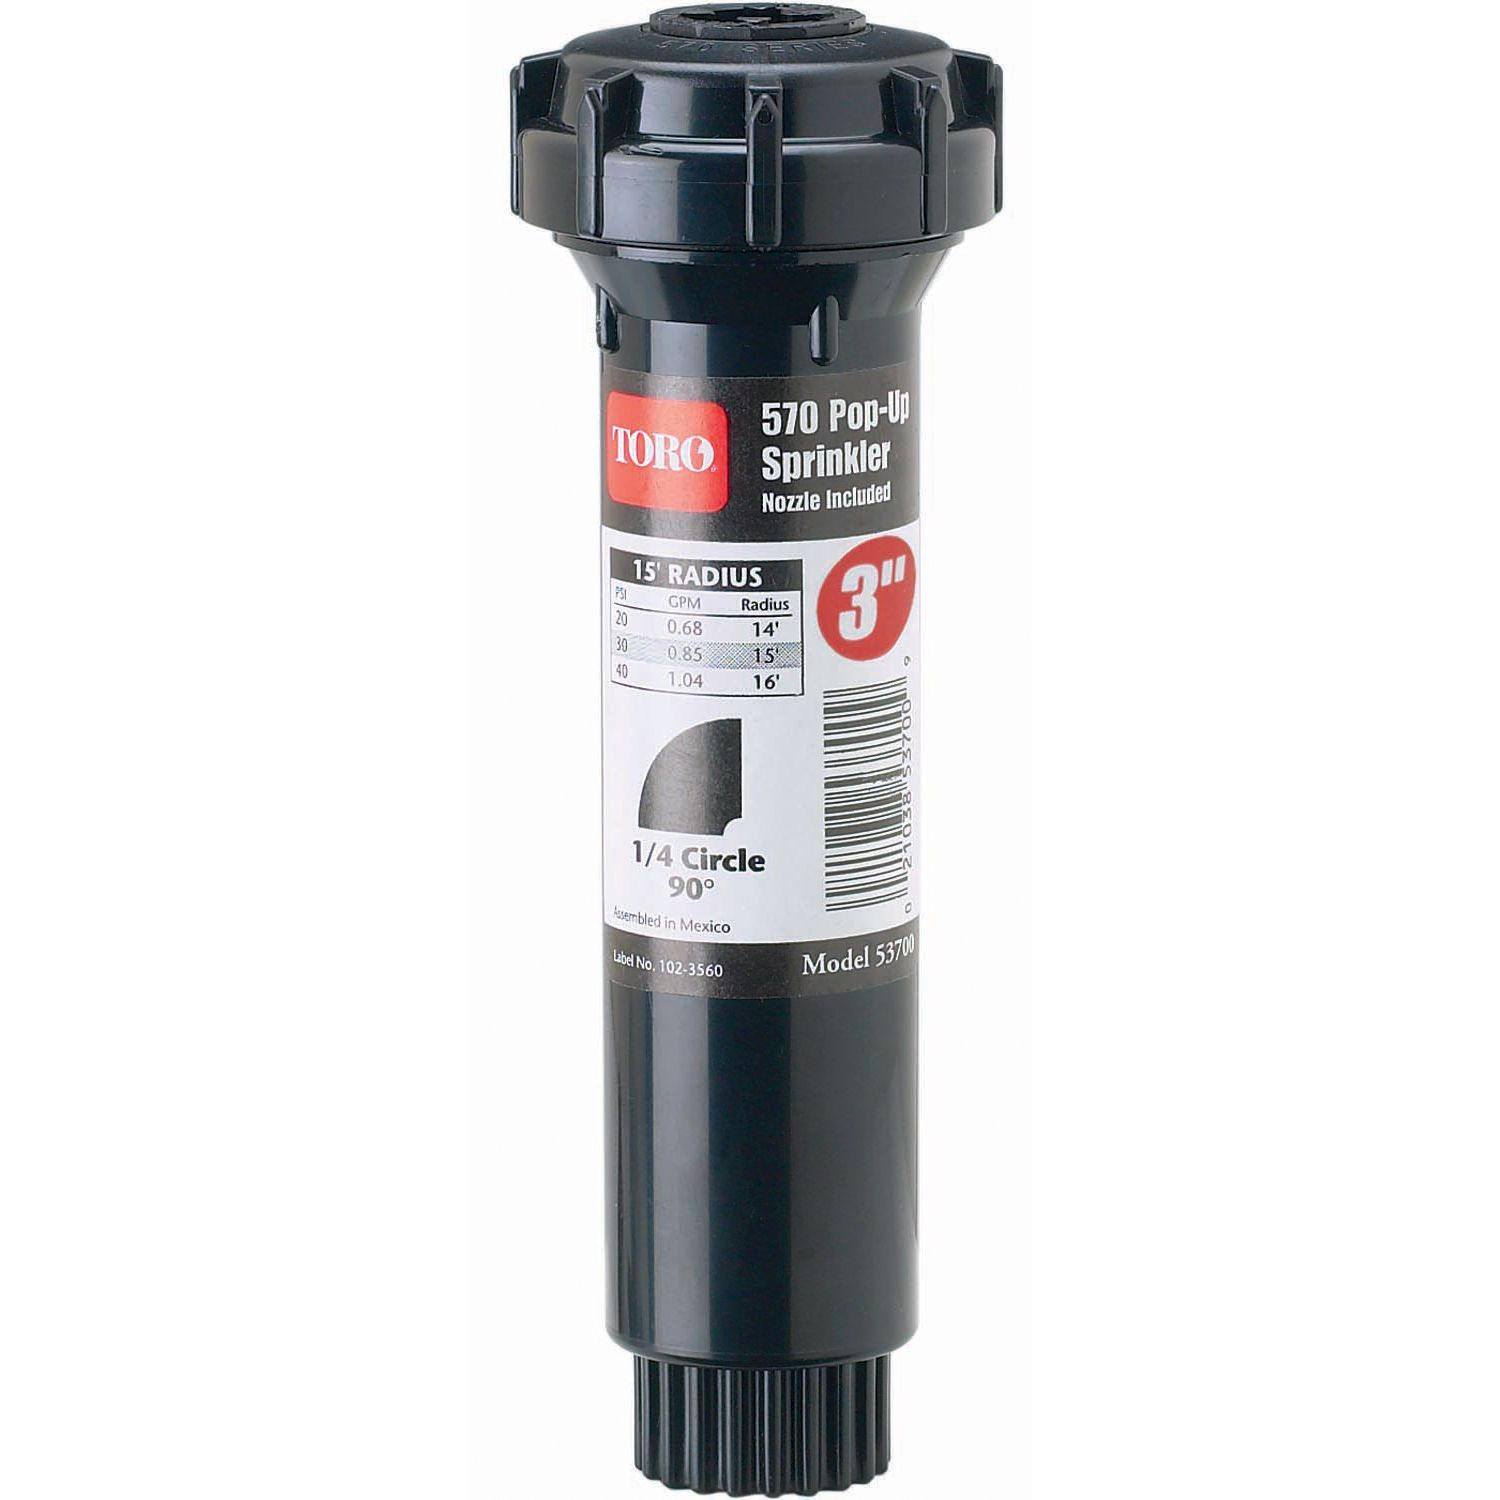 Toro 53815 3-inch 90° 570Z Pro Series Pop-Up Fixed Spray With Nozzle (Stationary Sprinklers), Black (Plastic)